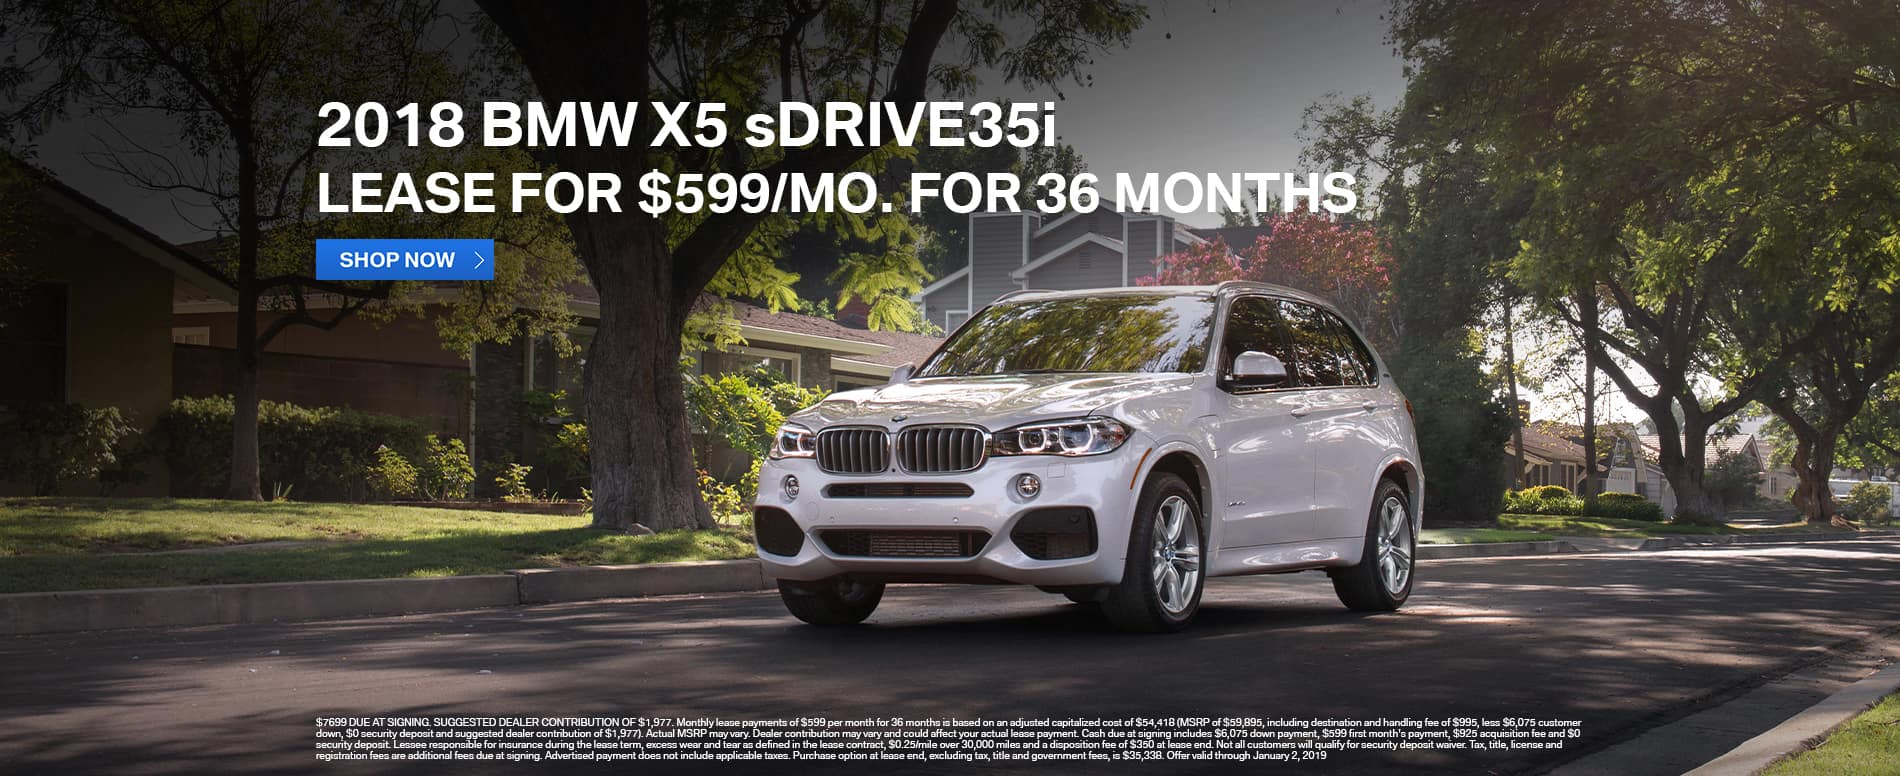 lease-2018-x5-sdrive35i-for-599-per-month-beaumont